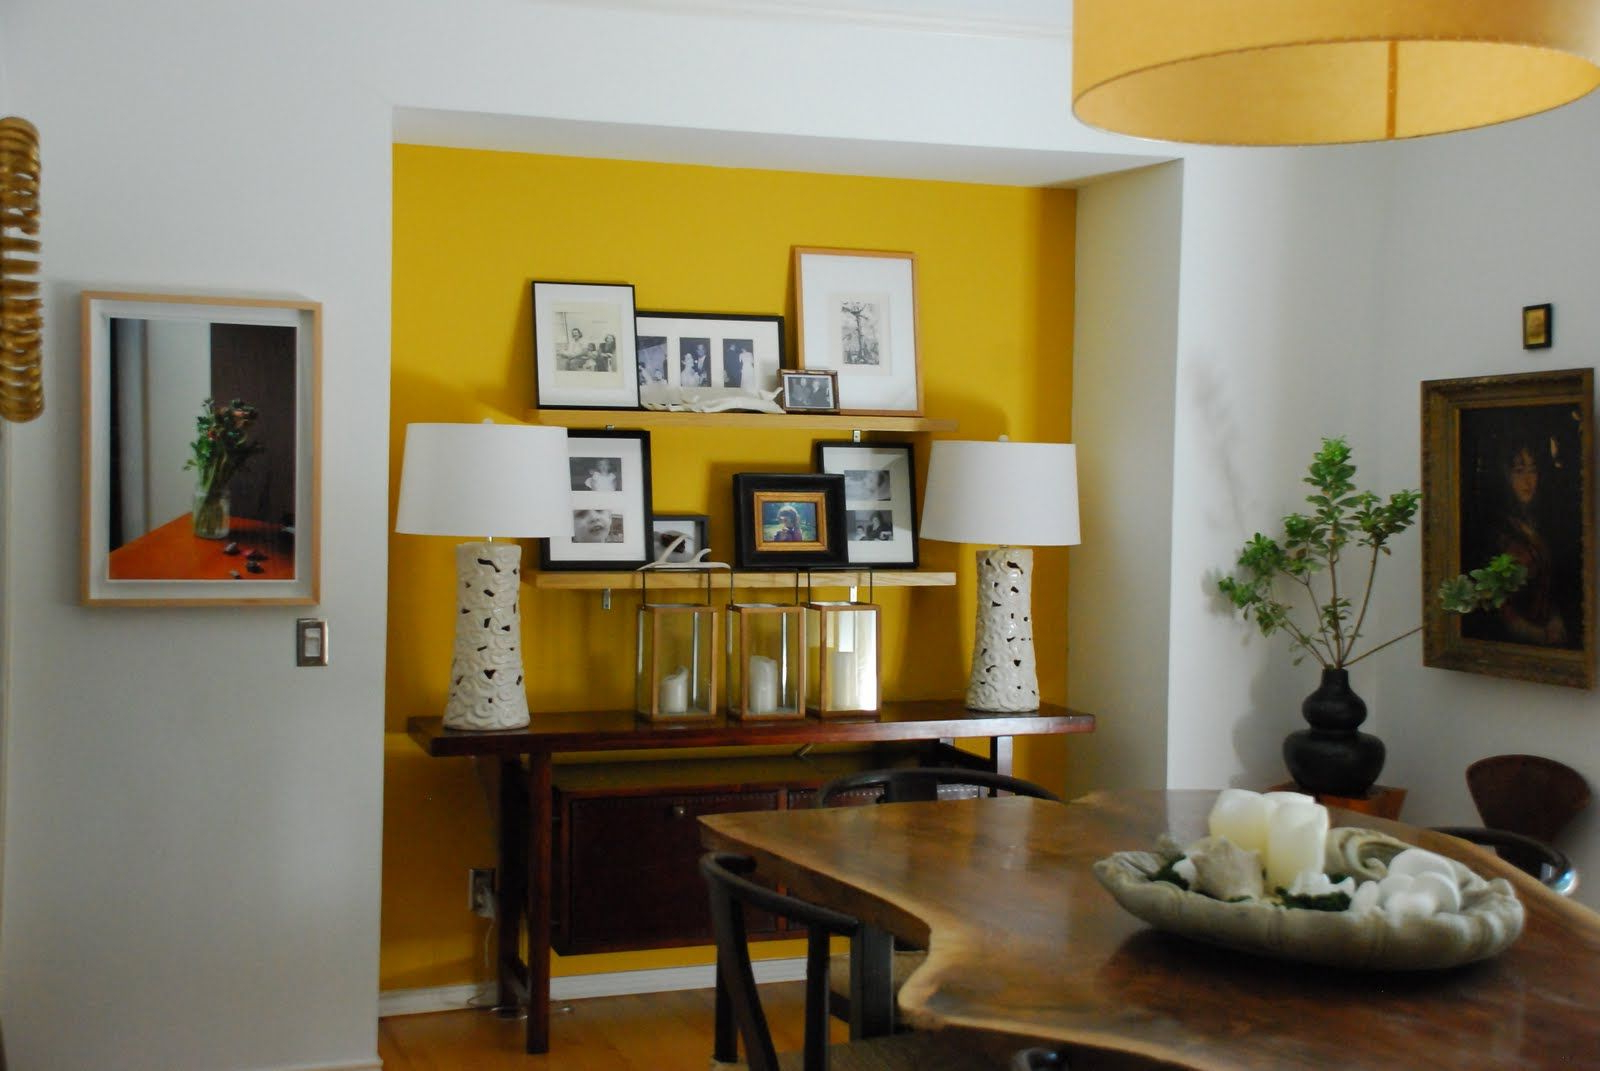 Wall Mirrors Ikea, Lighted Wall Mirror Within Most Popular Yellow Wall Mirrors (View 6 of 20)